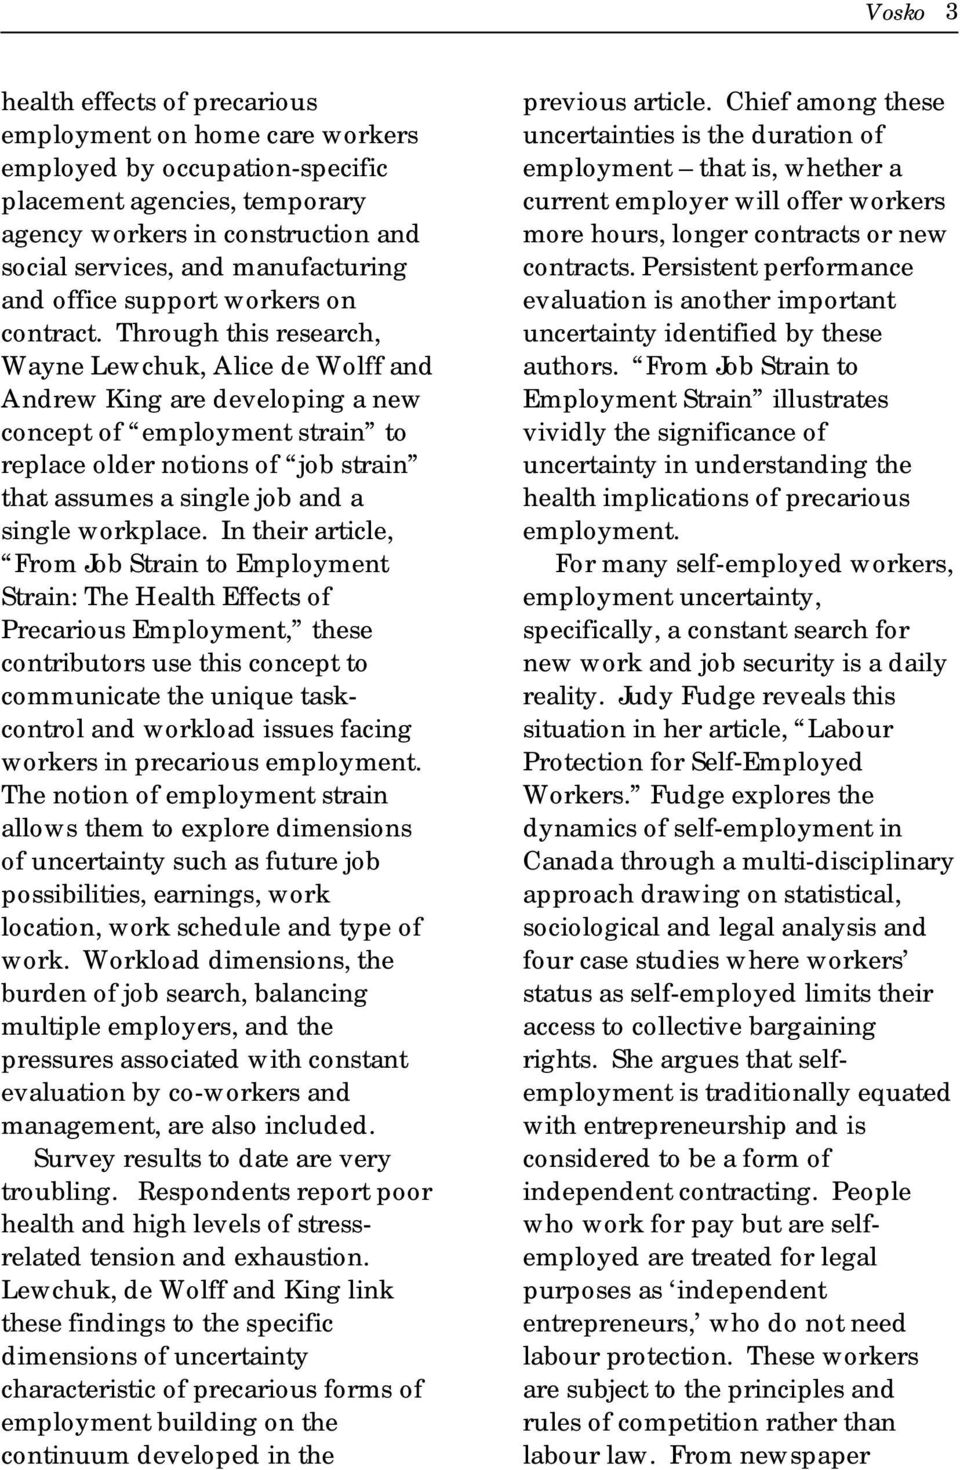 Through this research, Wayne Lewchuk, Alice de Wolff and Andrew King are developing a new concept of employment strain to replace older notions of job strain that assumes a single job and a single